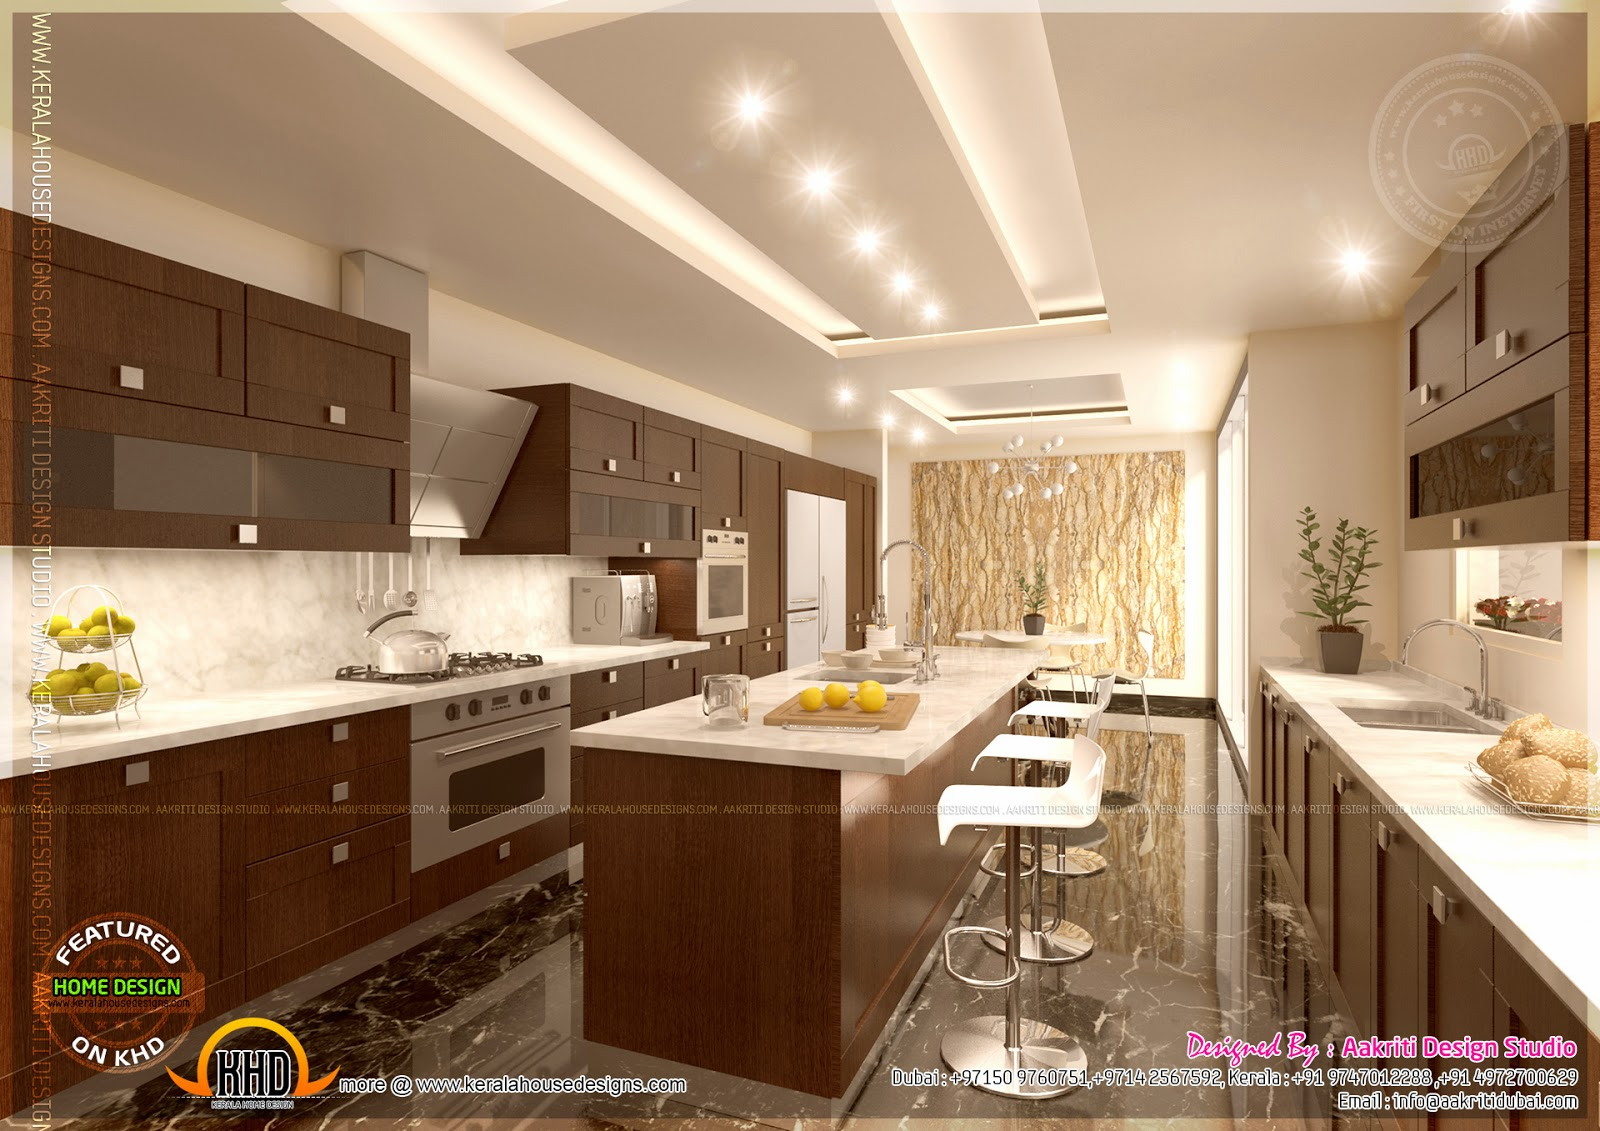 Kitchen designs by aakriti design studio kerala home - Home interior design kitchen pictures ...